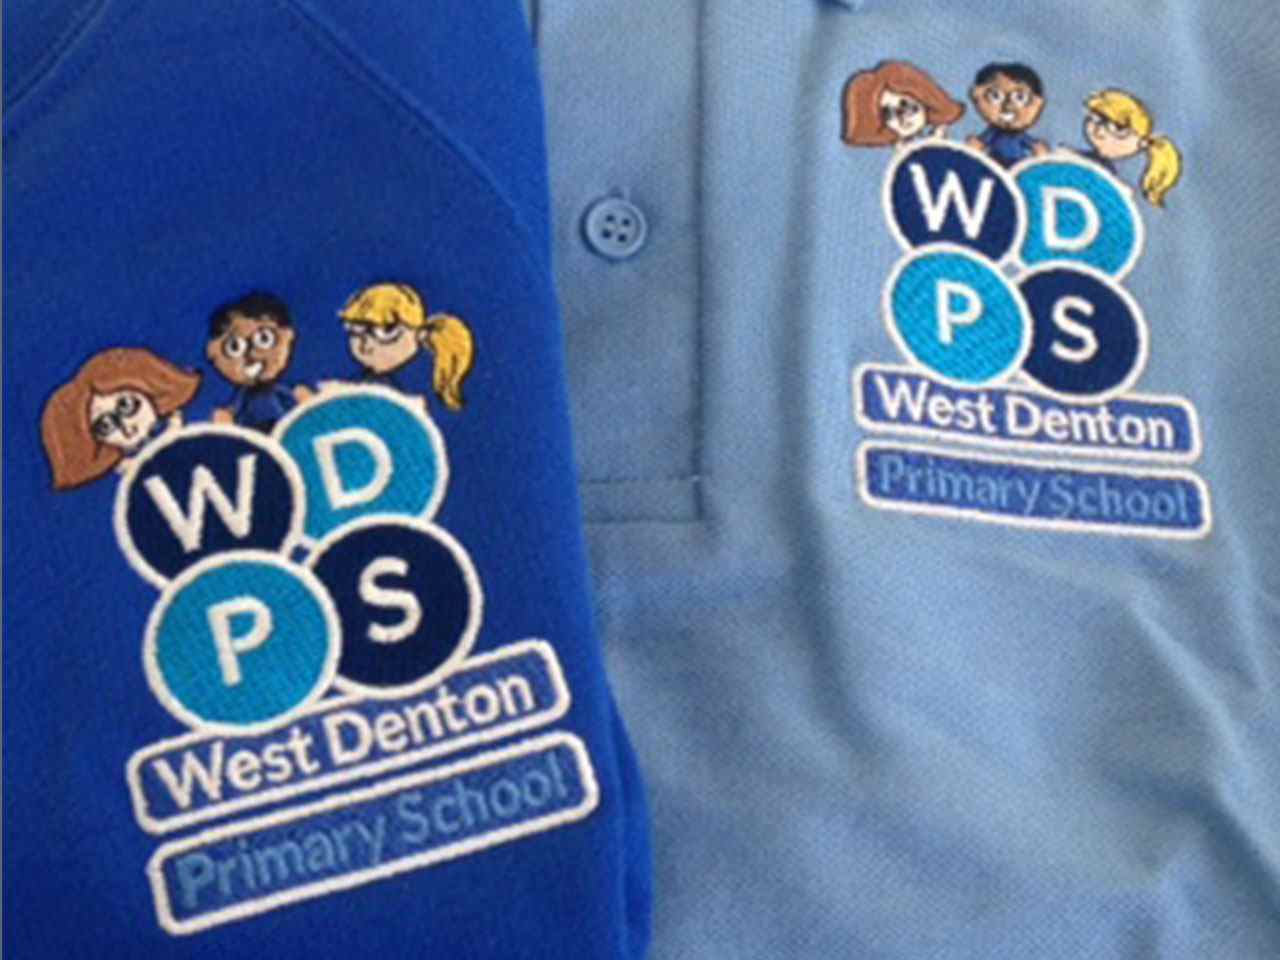 WDPS-logo-on-uniform copy